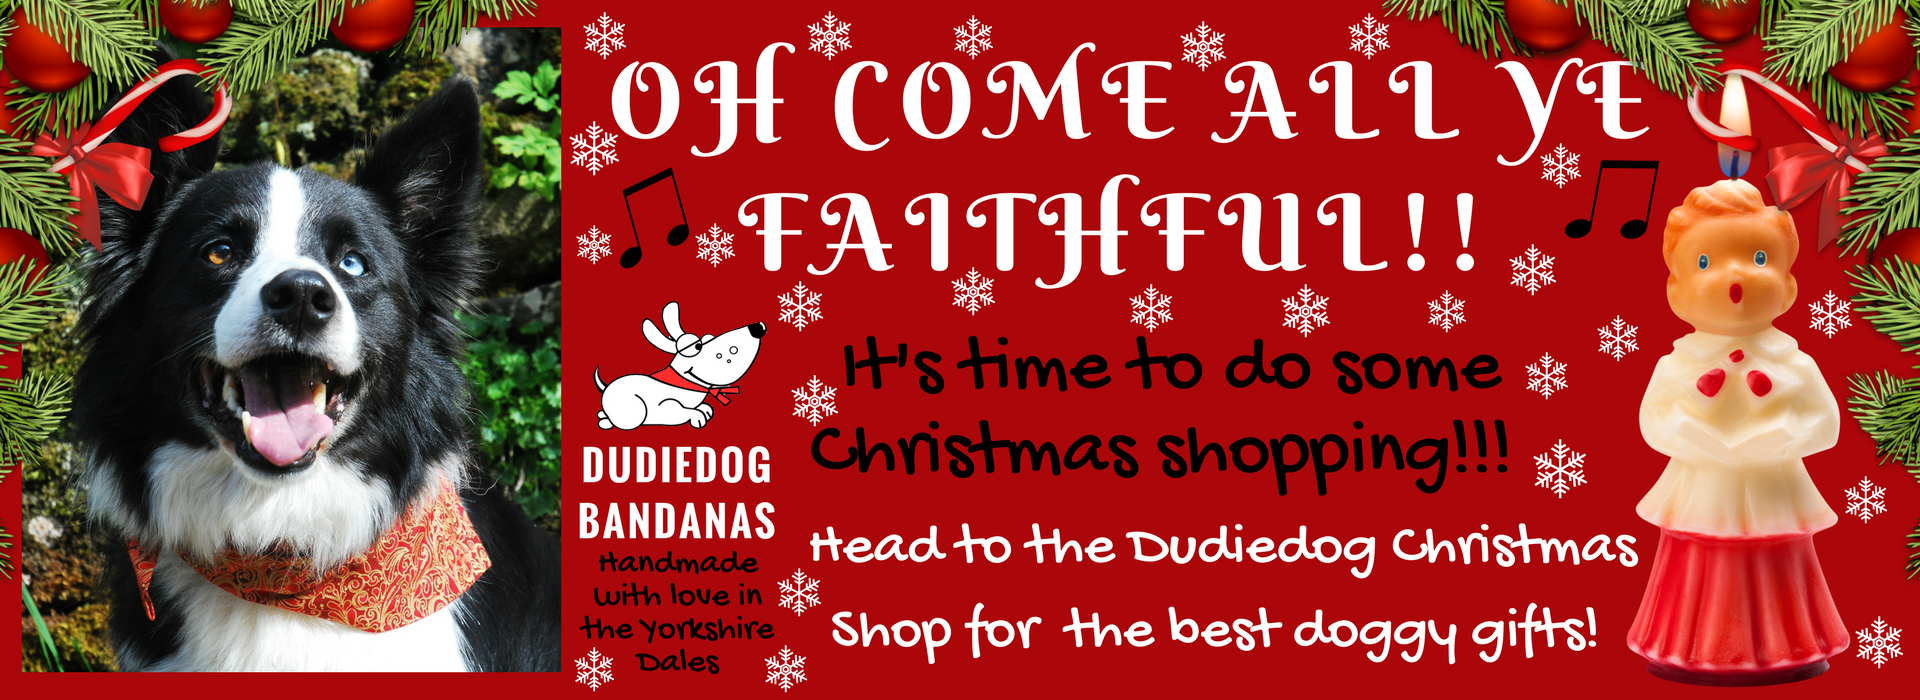 Dudiedog Bandanas Christmas dog shop for the best Christmas dog bandanas, bow ties and dog bibs UK. Fab gifts for dogs!